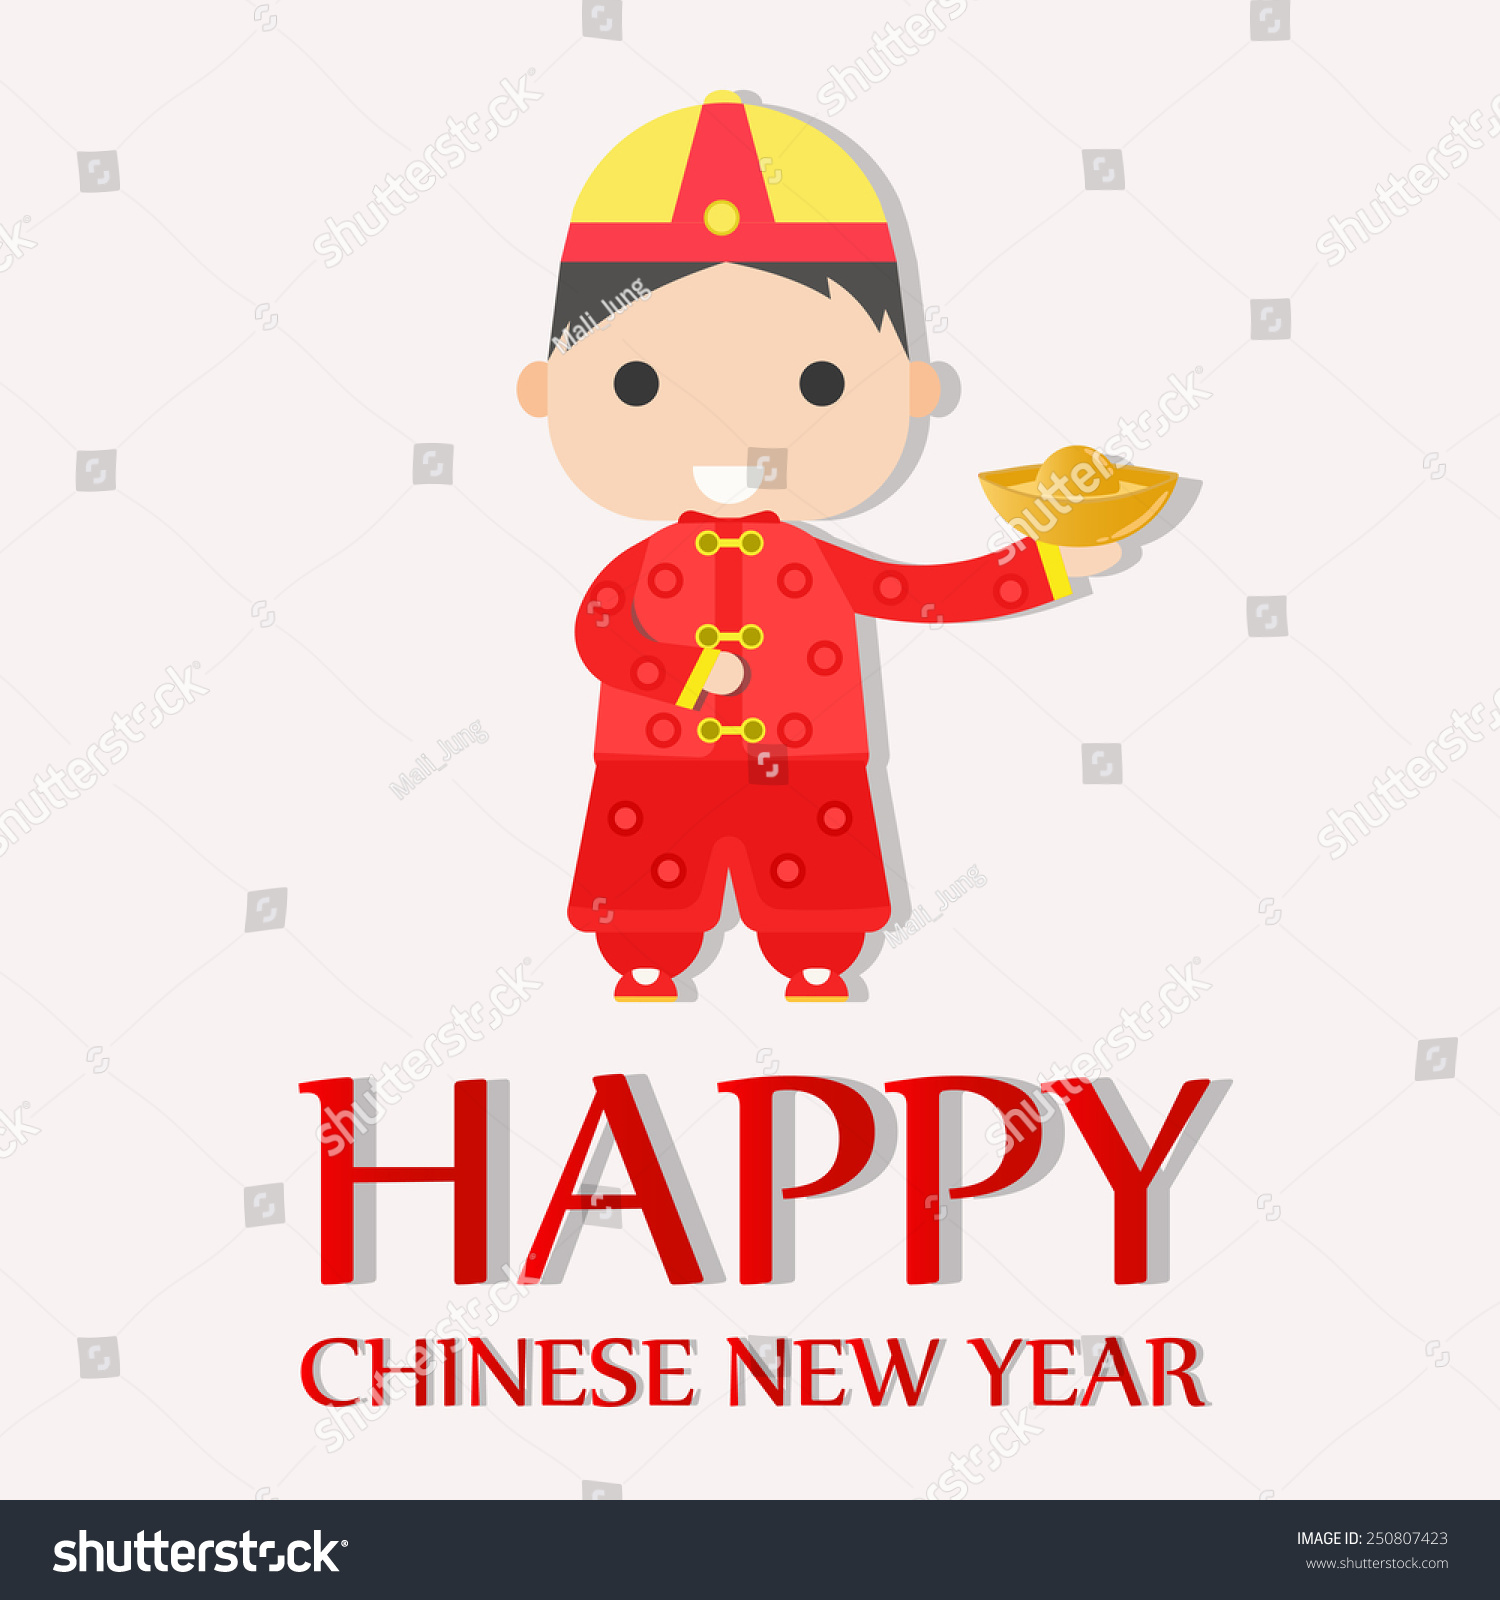 Happy Chinese New Year Greetings Card Happy Stock Vector (Royalty ...